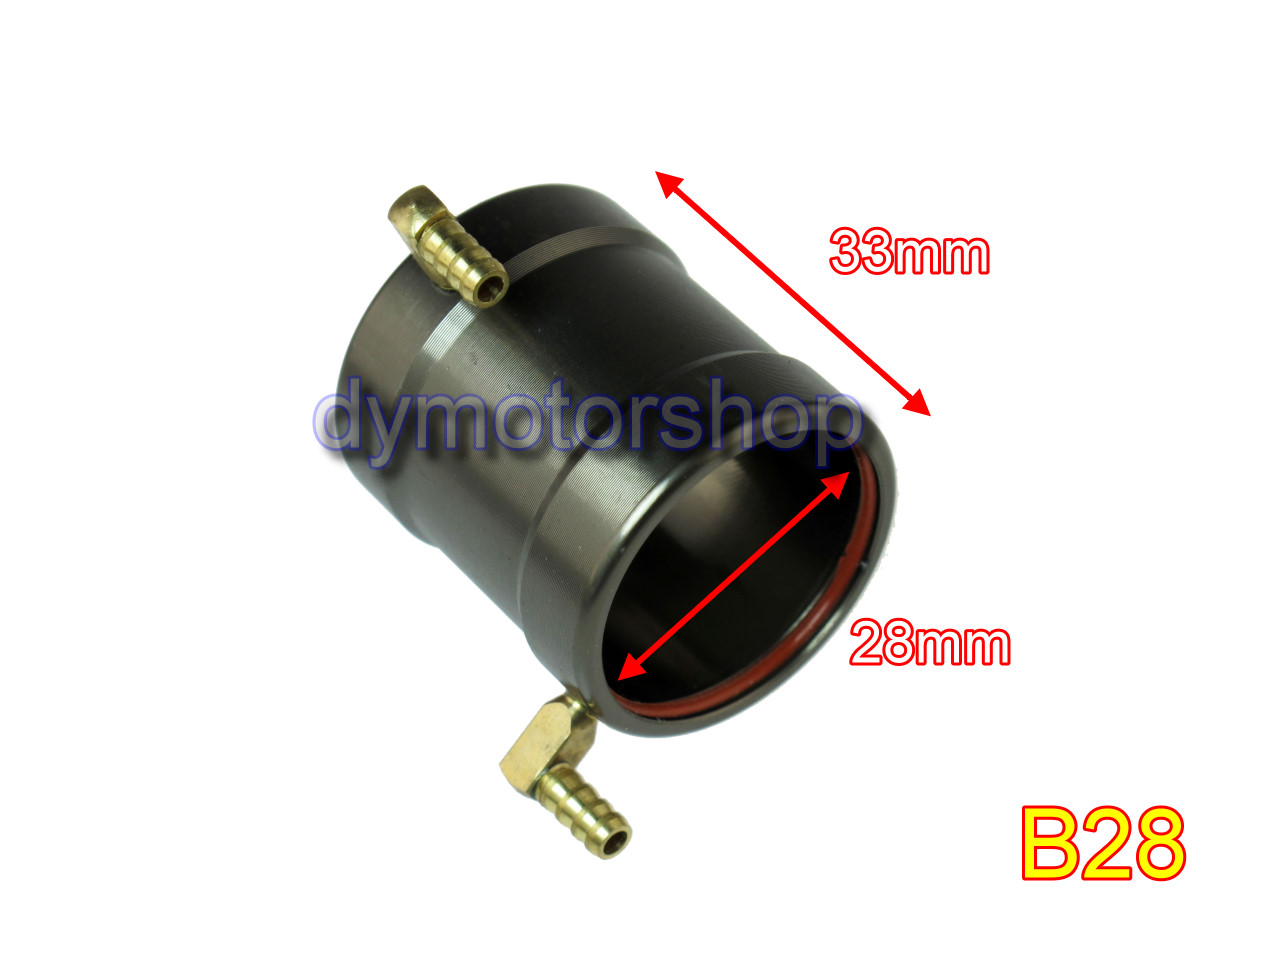 Aluminum Water Cooling Jacket for B28 ID: 28mm Brushless Motor